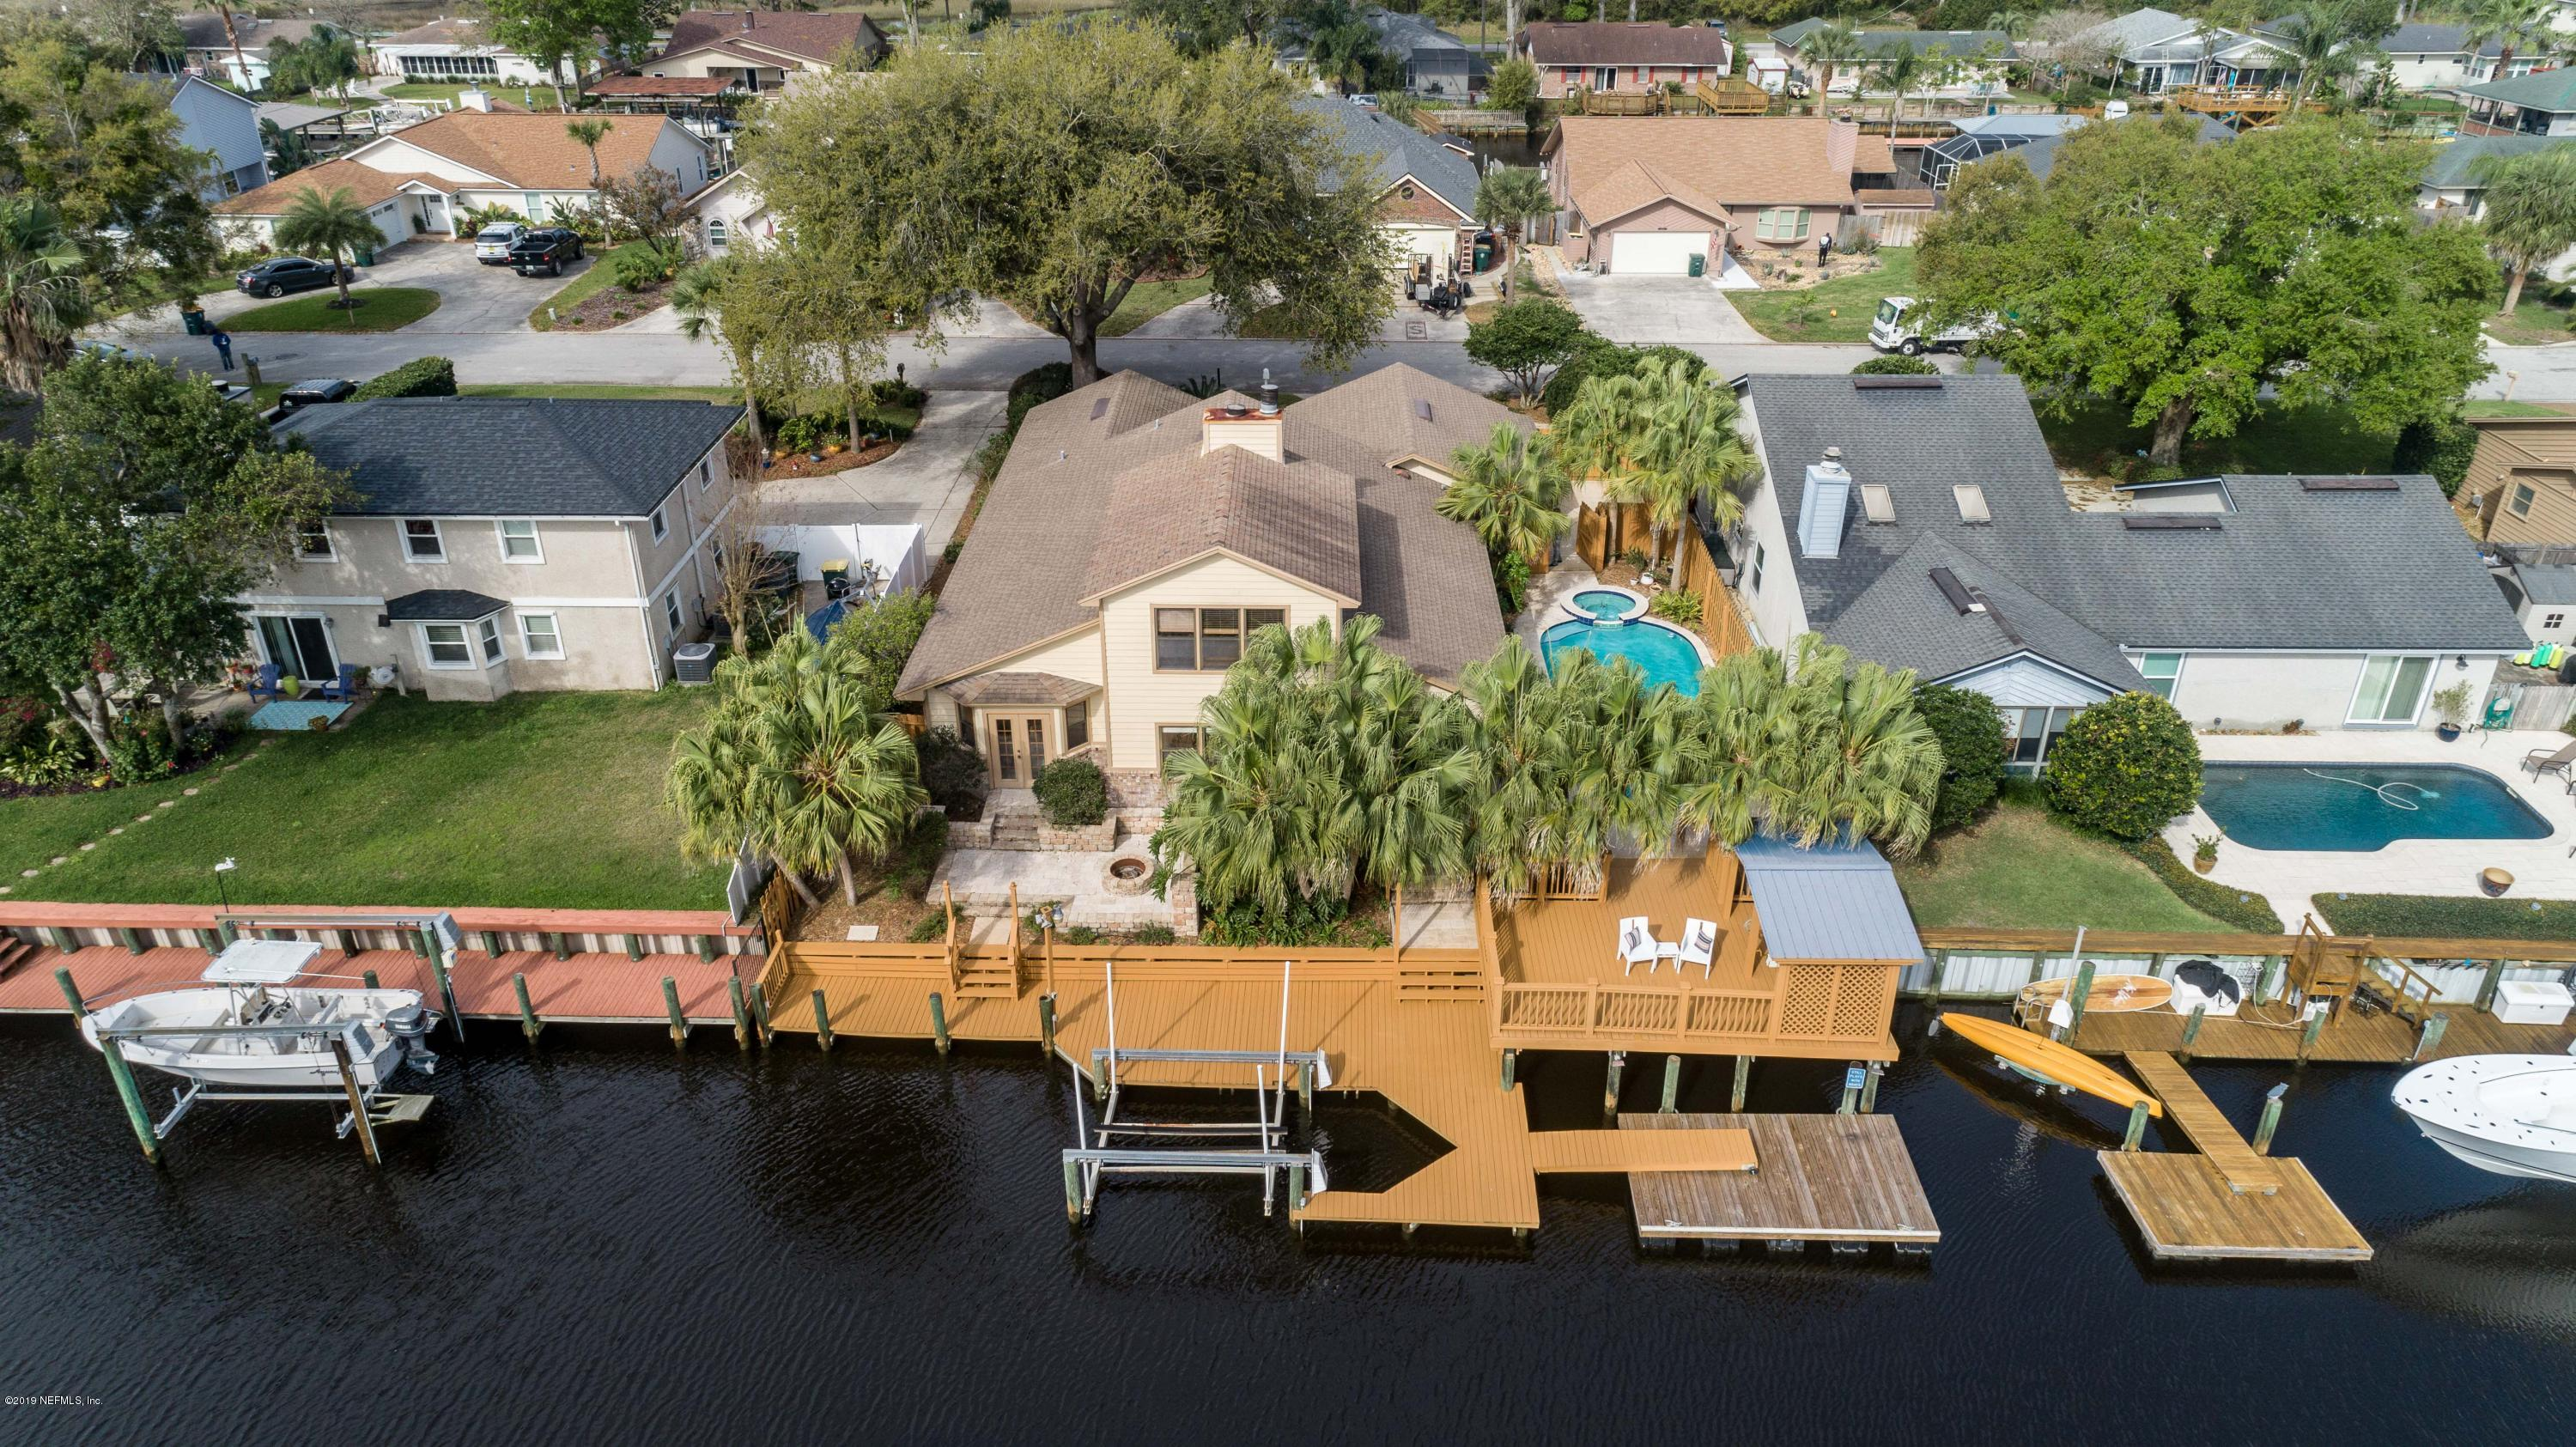 4147 CORDGRASS INLET, JACKSONVILLE, FLORIDA 32250, 3 Bedrooms Bedrooms, ,2 BathroomsBathrooms,Residential - single family,For sale,CORDGRASS INLET,986298